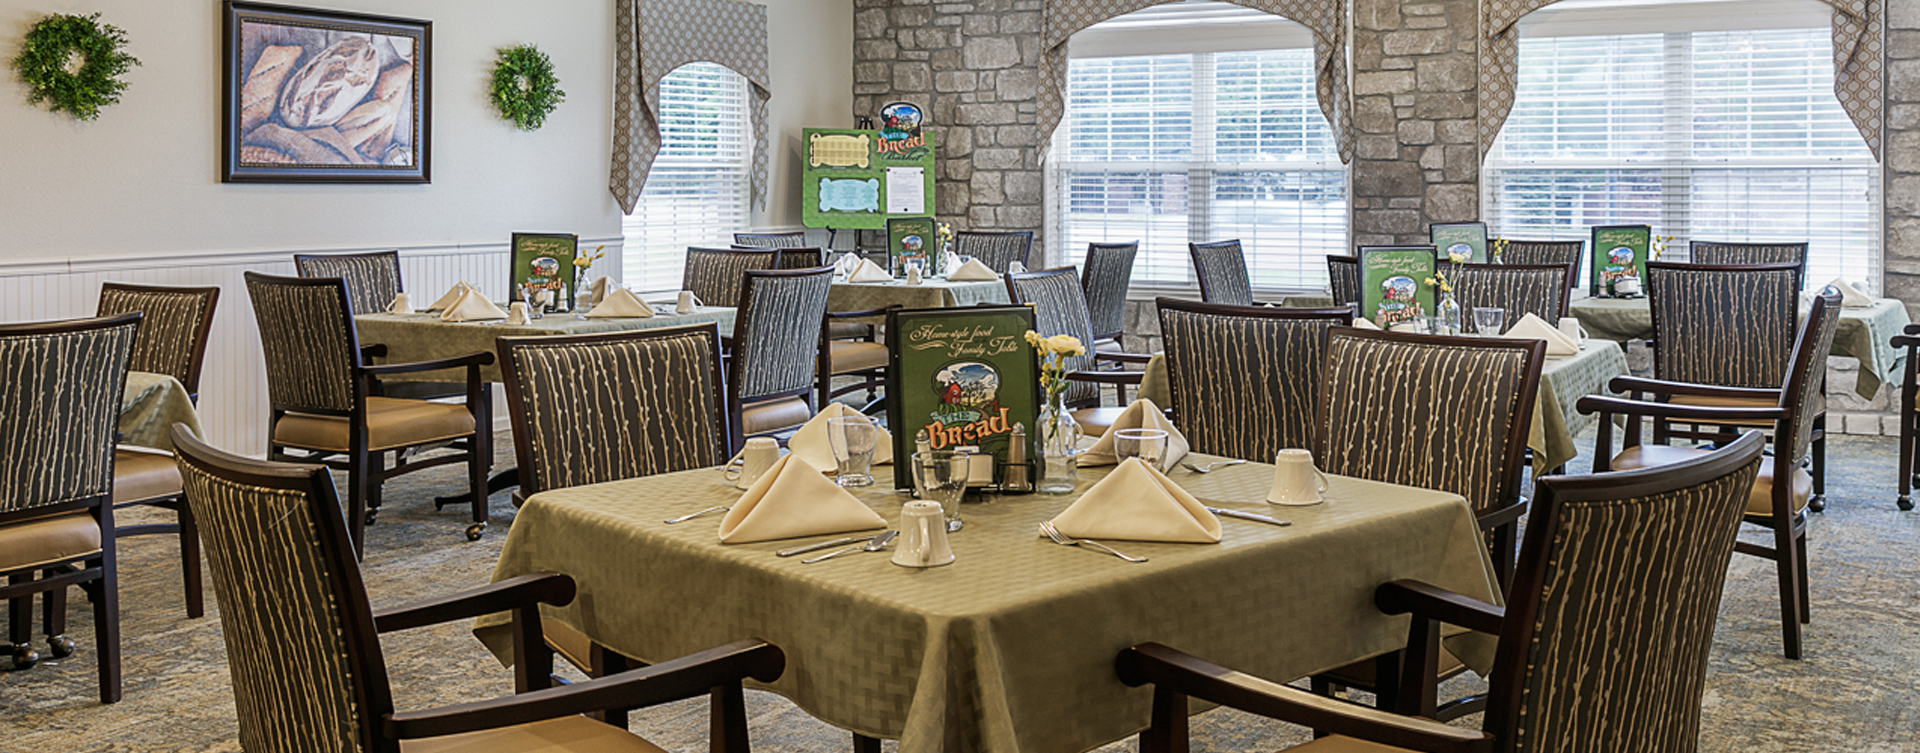 Enjoy homestyle food with made-from-scratch recipes in our dining room at Bickford of Omaha - Blondo